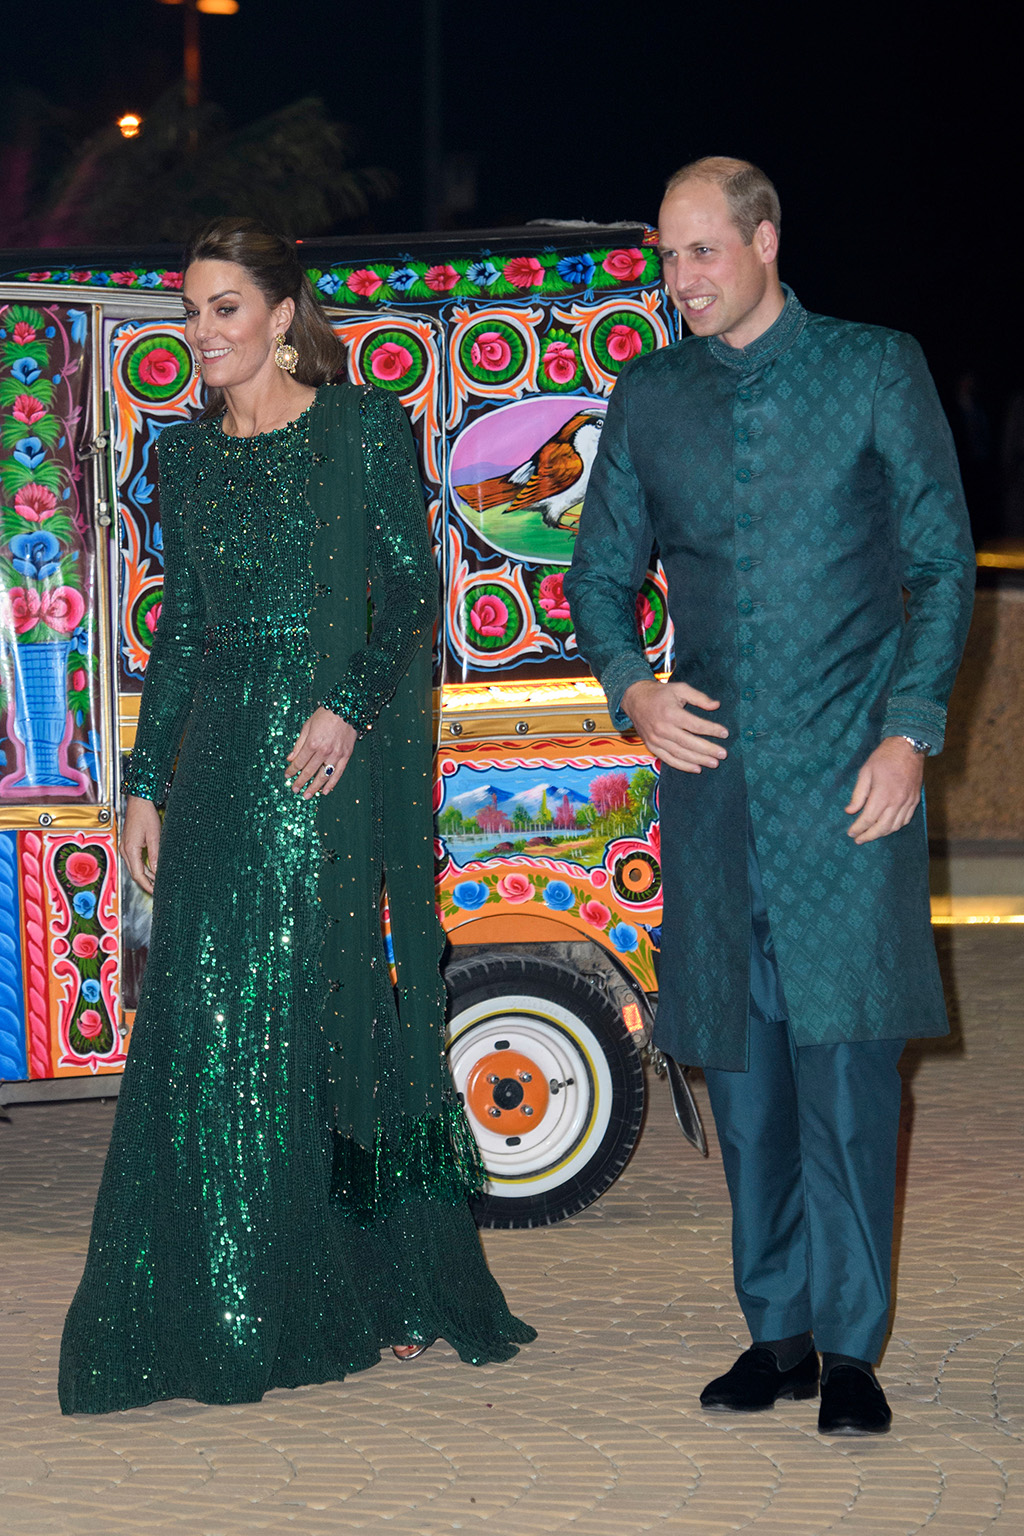 Prince William, sherwani, Pakistani traditional outfit, celebrity style, British royals, Kate Middleton, Jenny Packham dress, green gown, silver sandals, and Catherine Duchess of Cambridge during a reception hosted by the British High Commissioner to Pakistan in IslamabadPrince William and Catherine Duchess of Cambridge visit to Pakistan - 15 Oct 2019